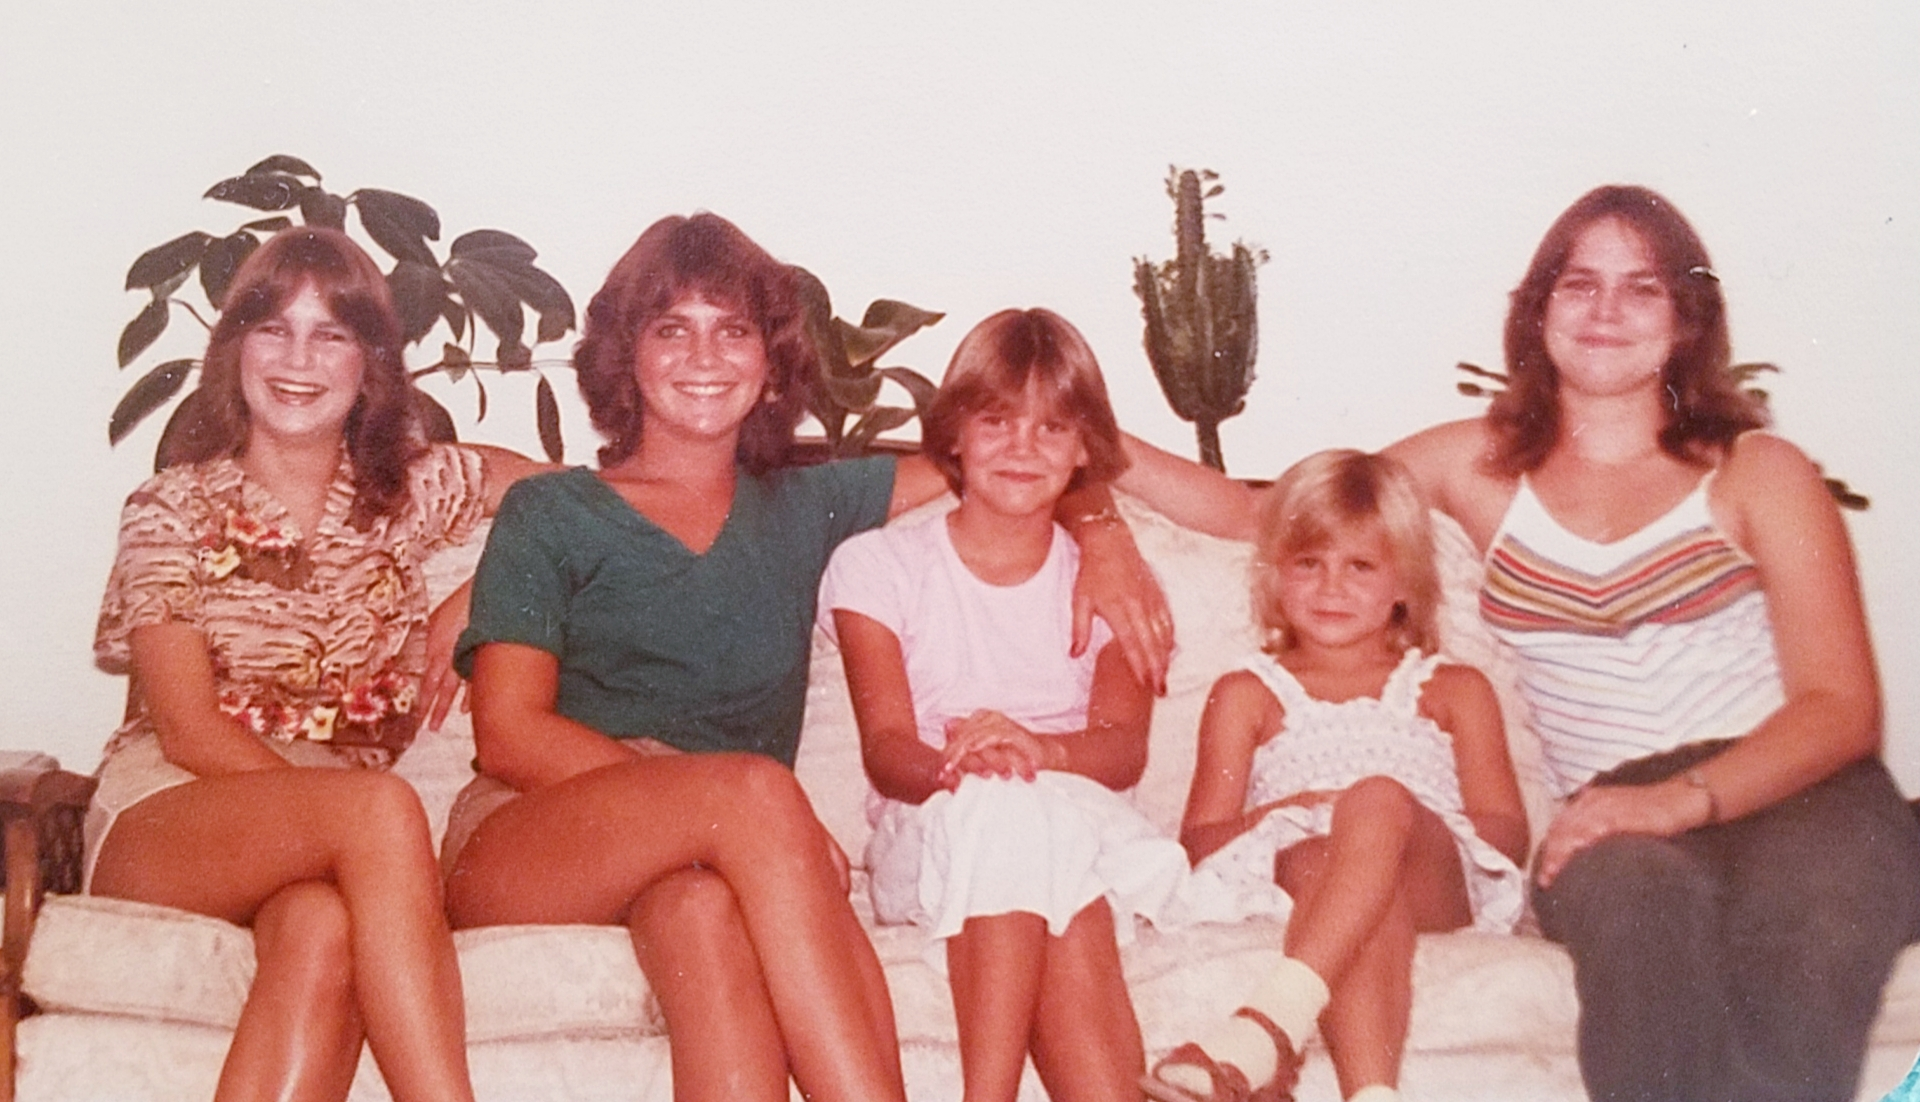 Julia (green top)with her sisters- Kelly, Missy, Kerry & Megan